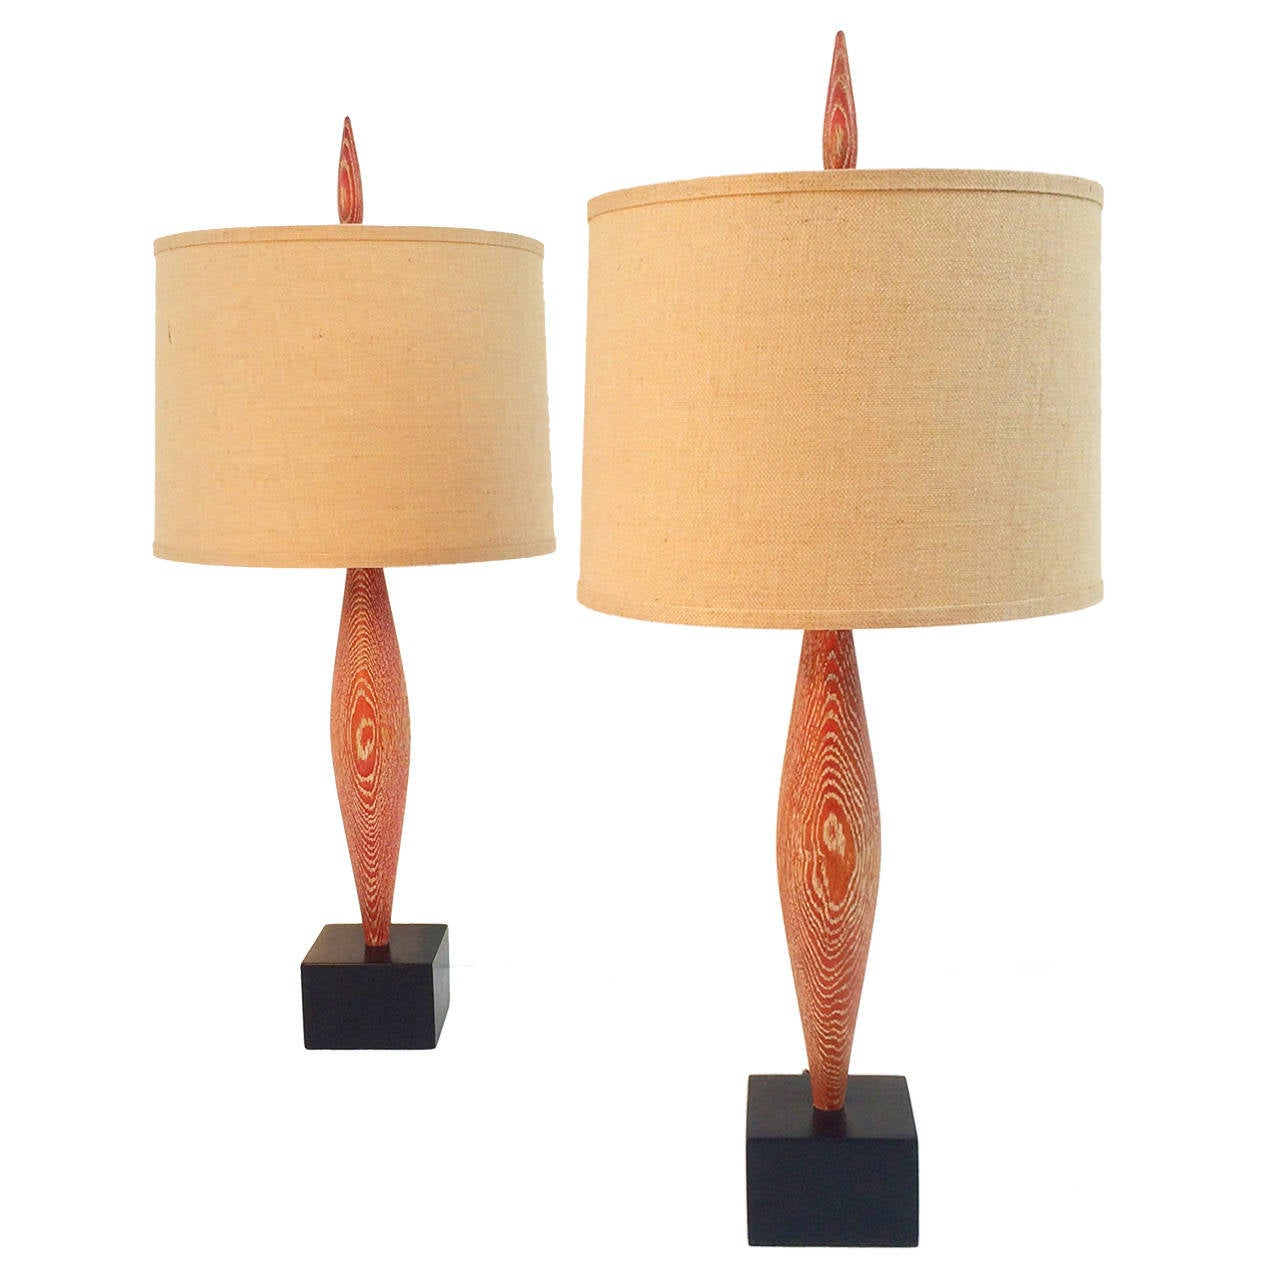 Pair of Yasha Heifetz lamps